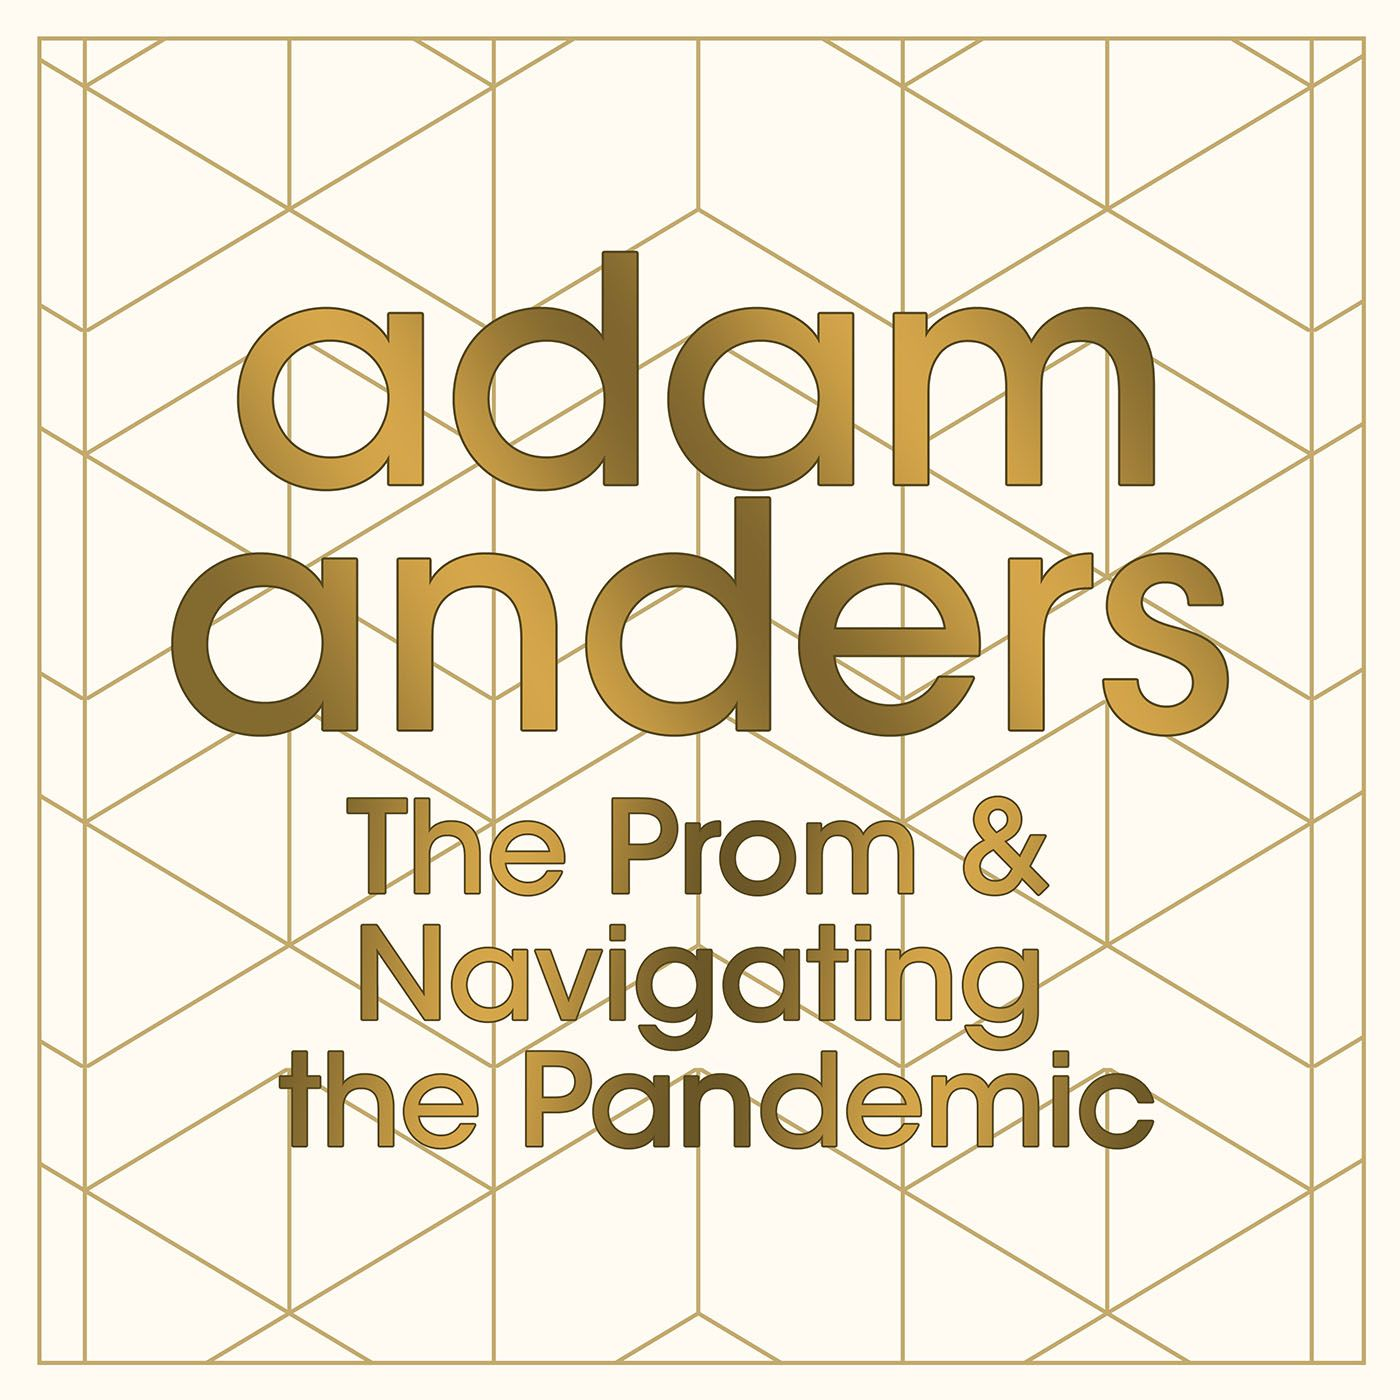 The Prom & Navigating the Pandemic